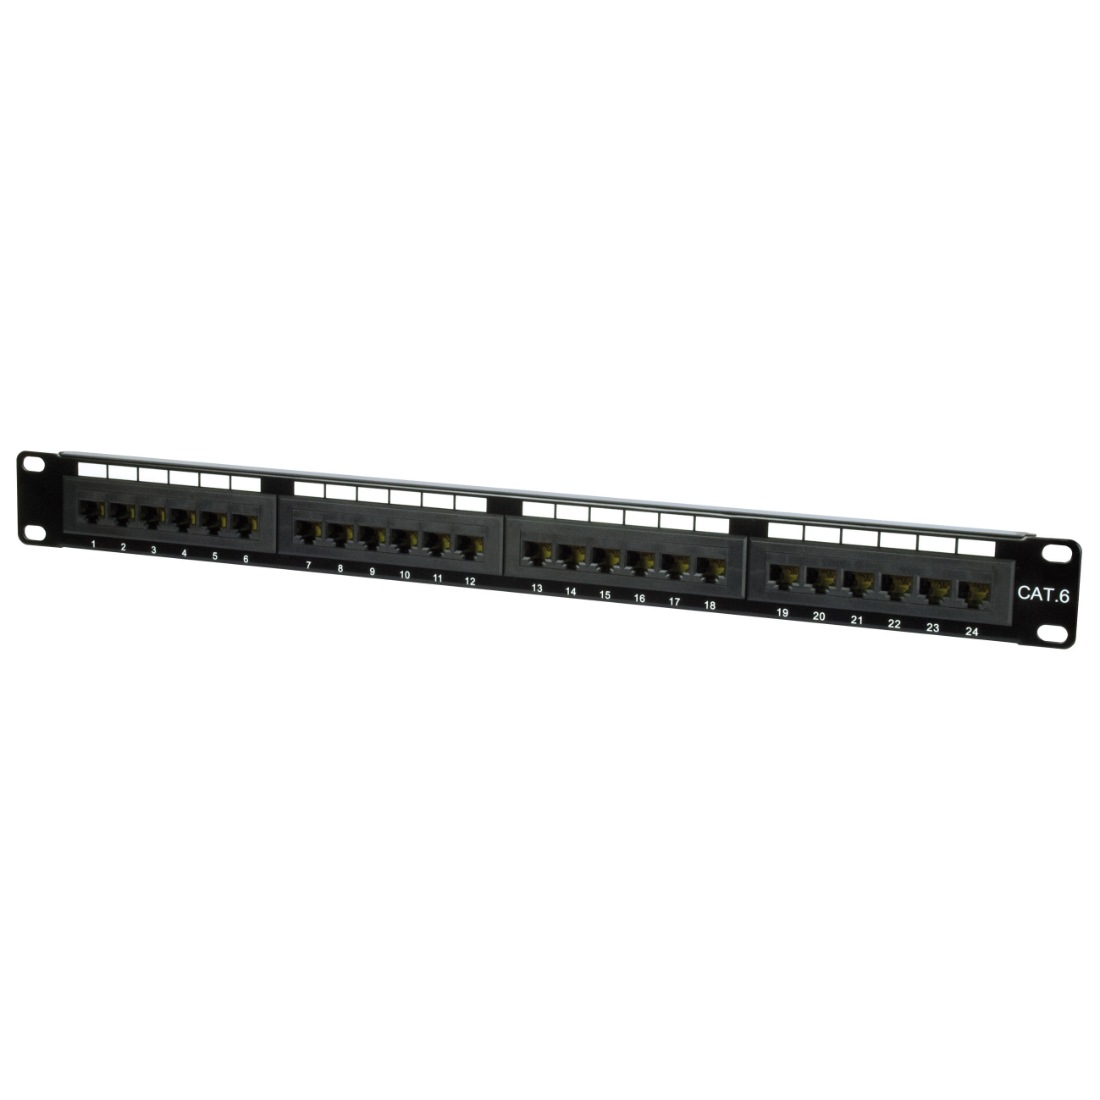 Philex 19 1u 24 Port Utp Cat6 Patch Panel